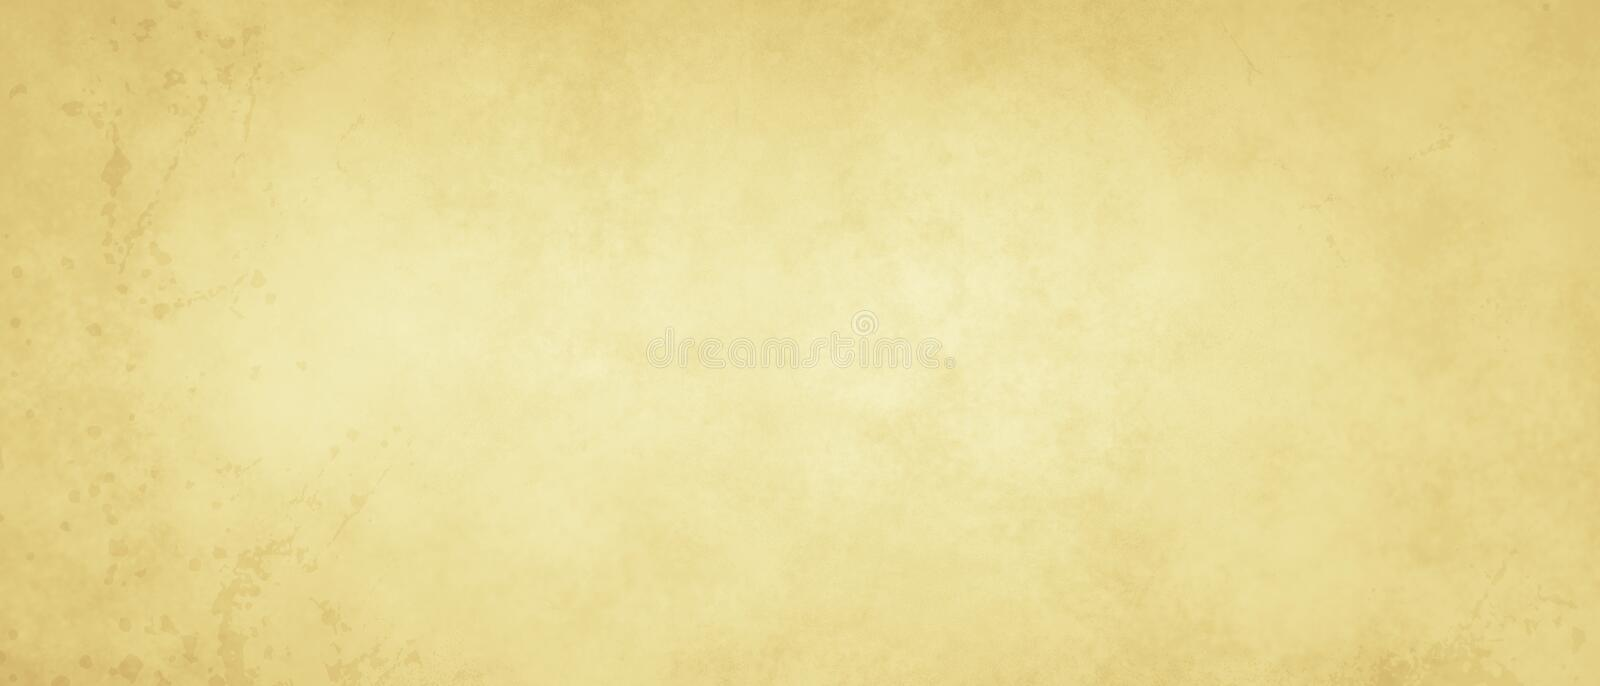 Old paper texture background with texture and grunge stains in soft beige or light yellow white color, old vintage background vector illustration